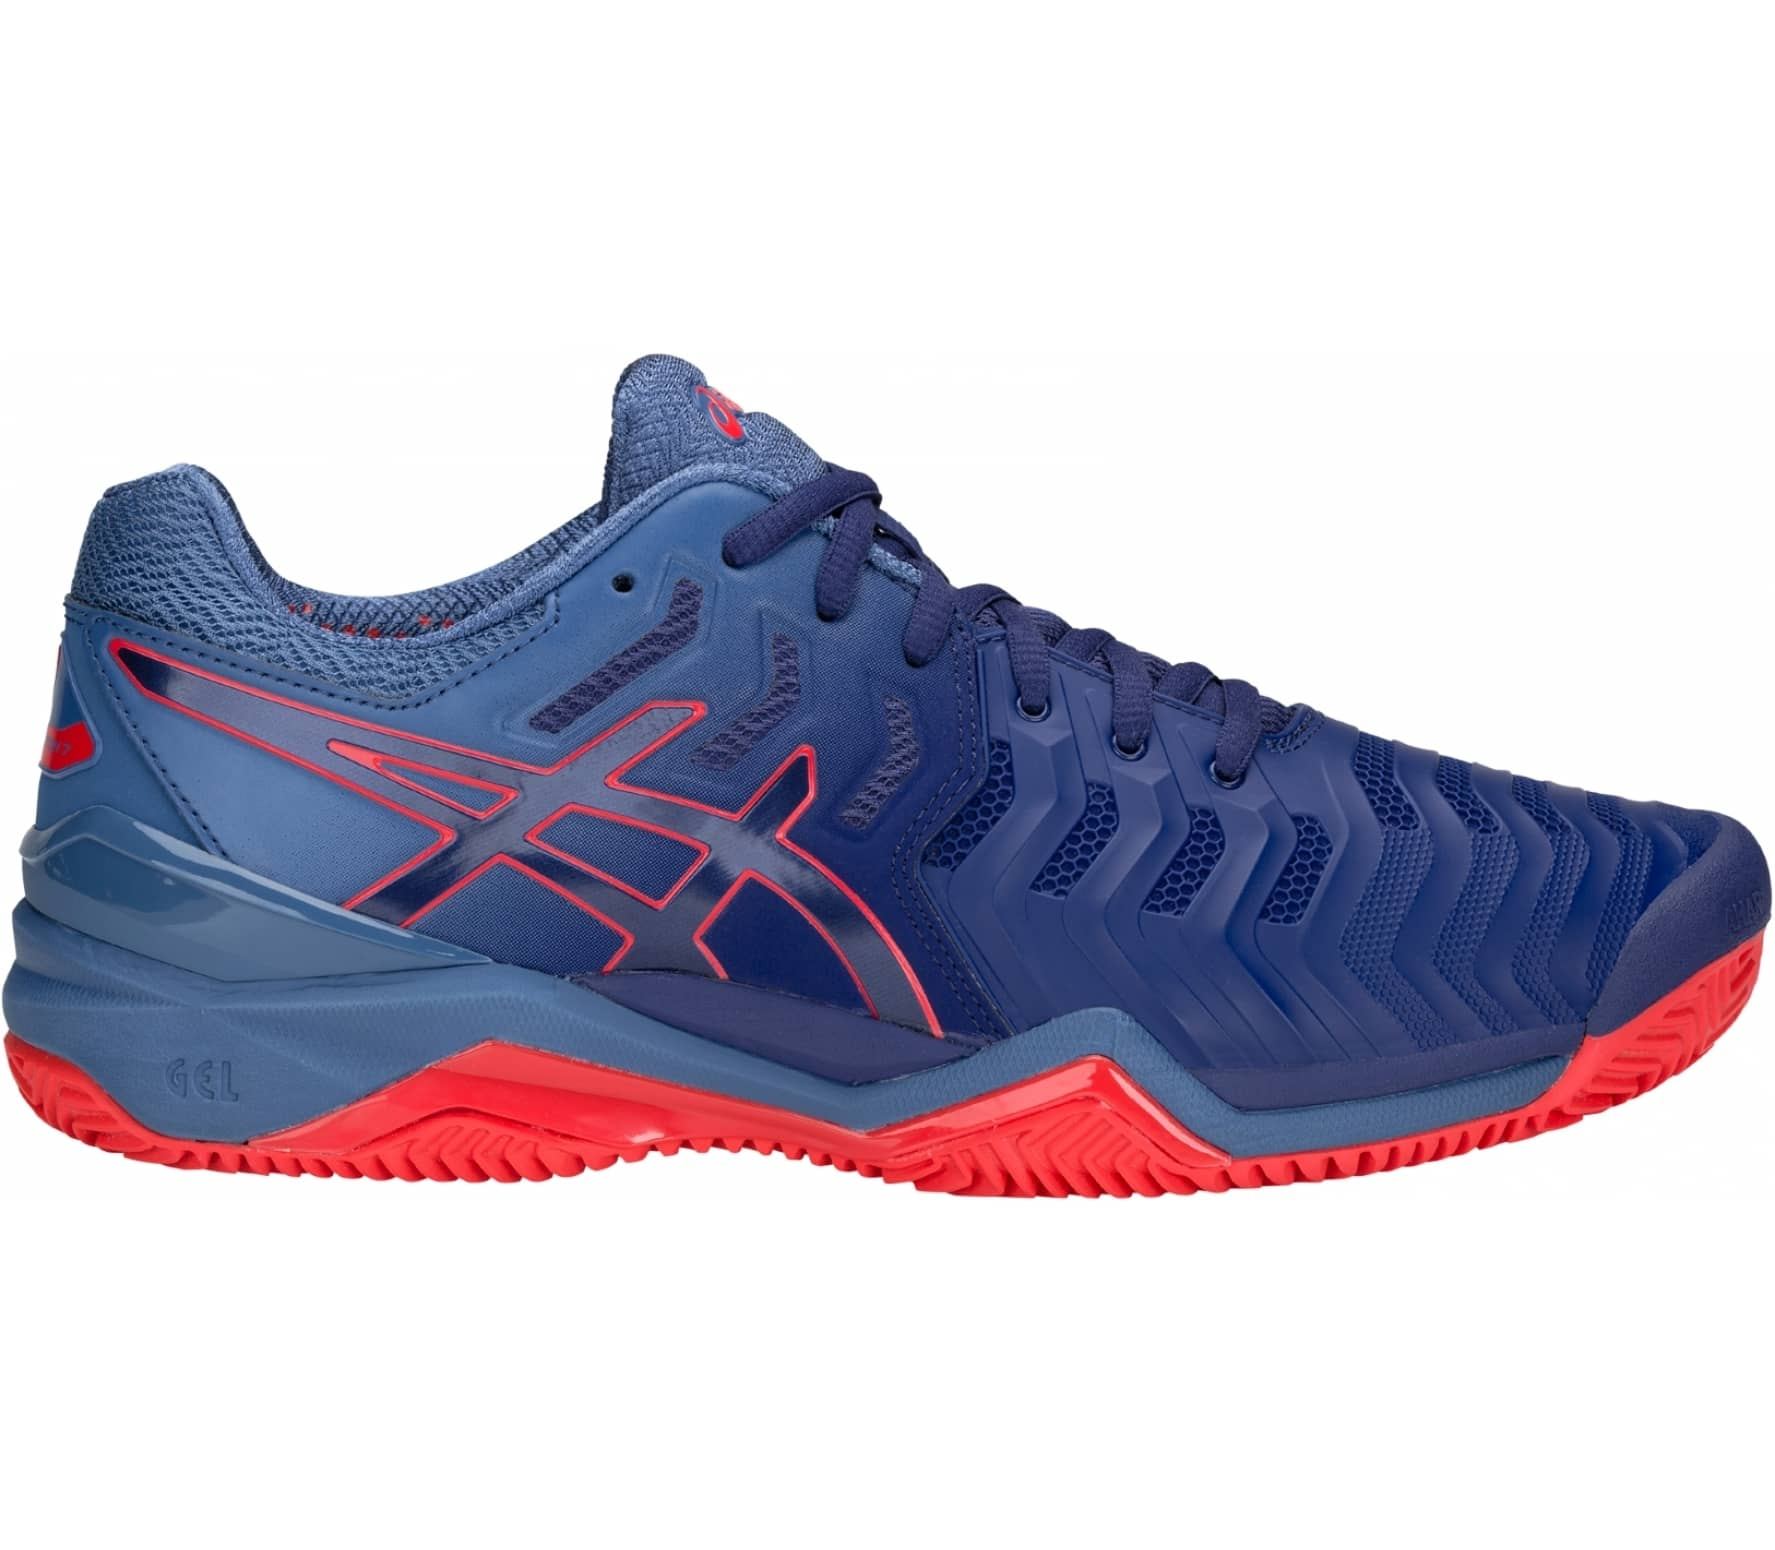 da715e7147d ASICS - Gel-Resolution 7 Clay Uomo Scarpa da tennis (blu) compra ...